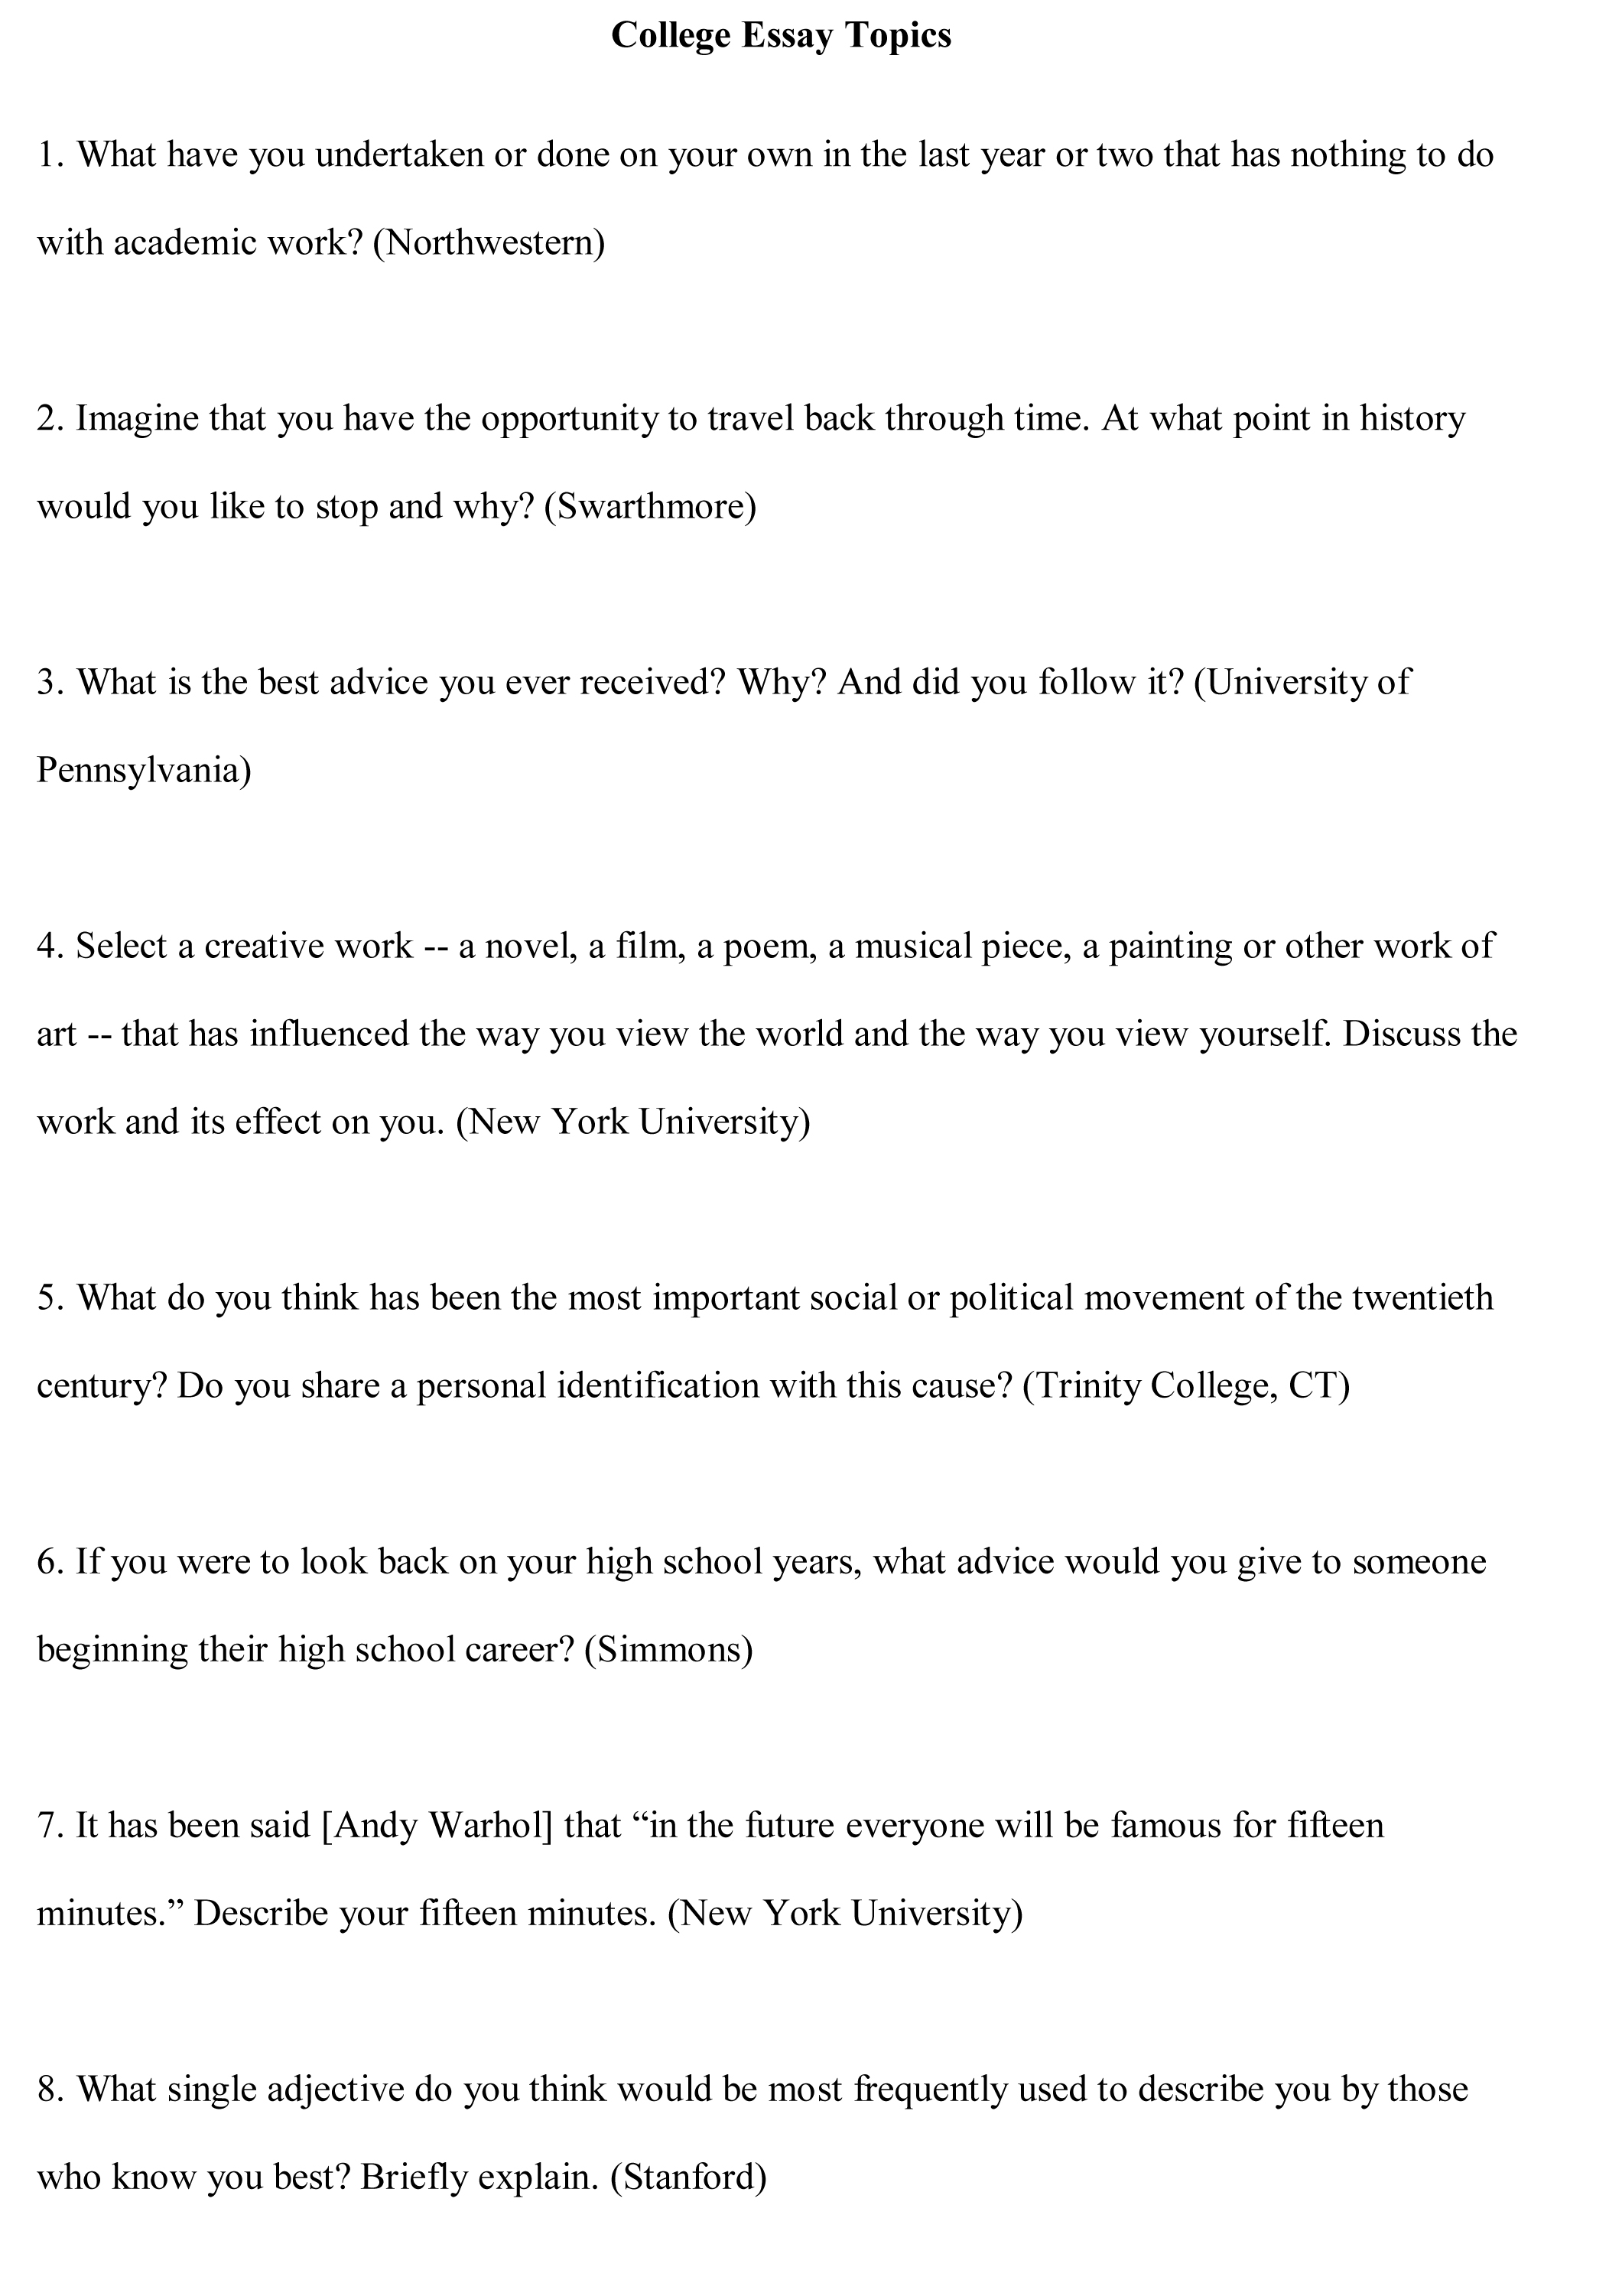 014 Essay Example Attention Getters For Essays College Topics Free Striking Scholarship Creative Good Full